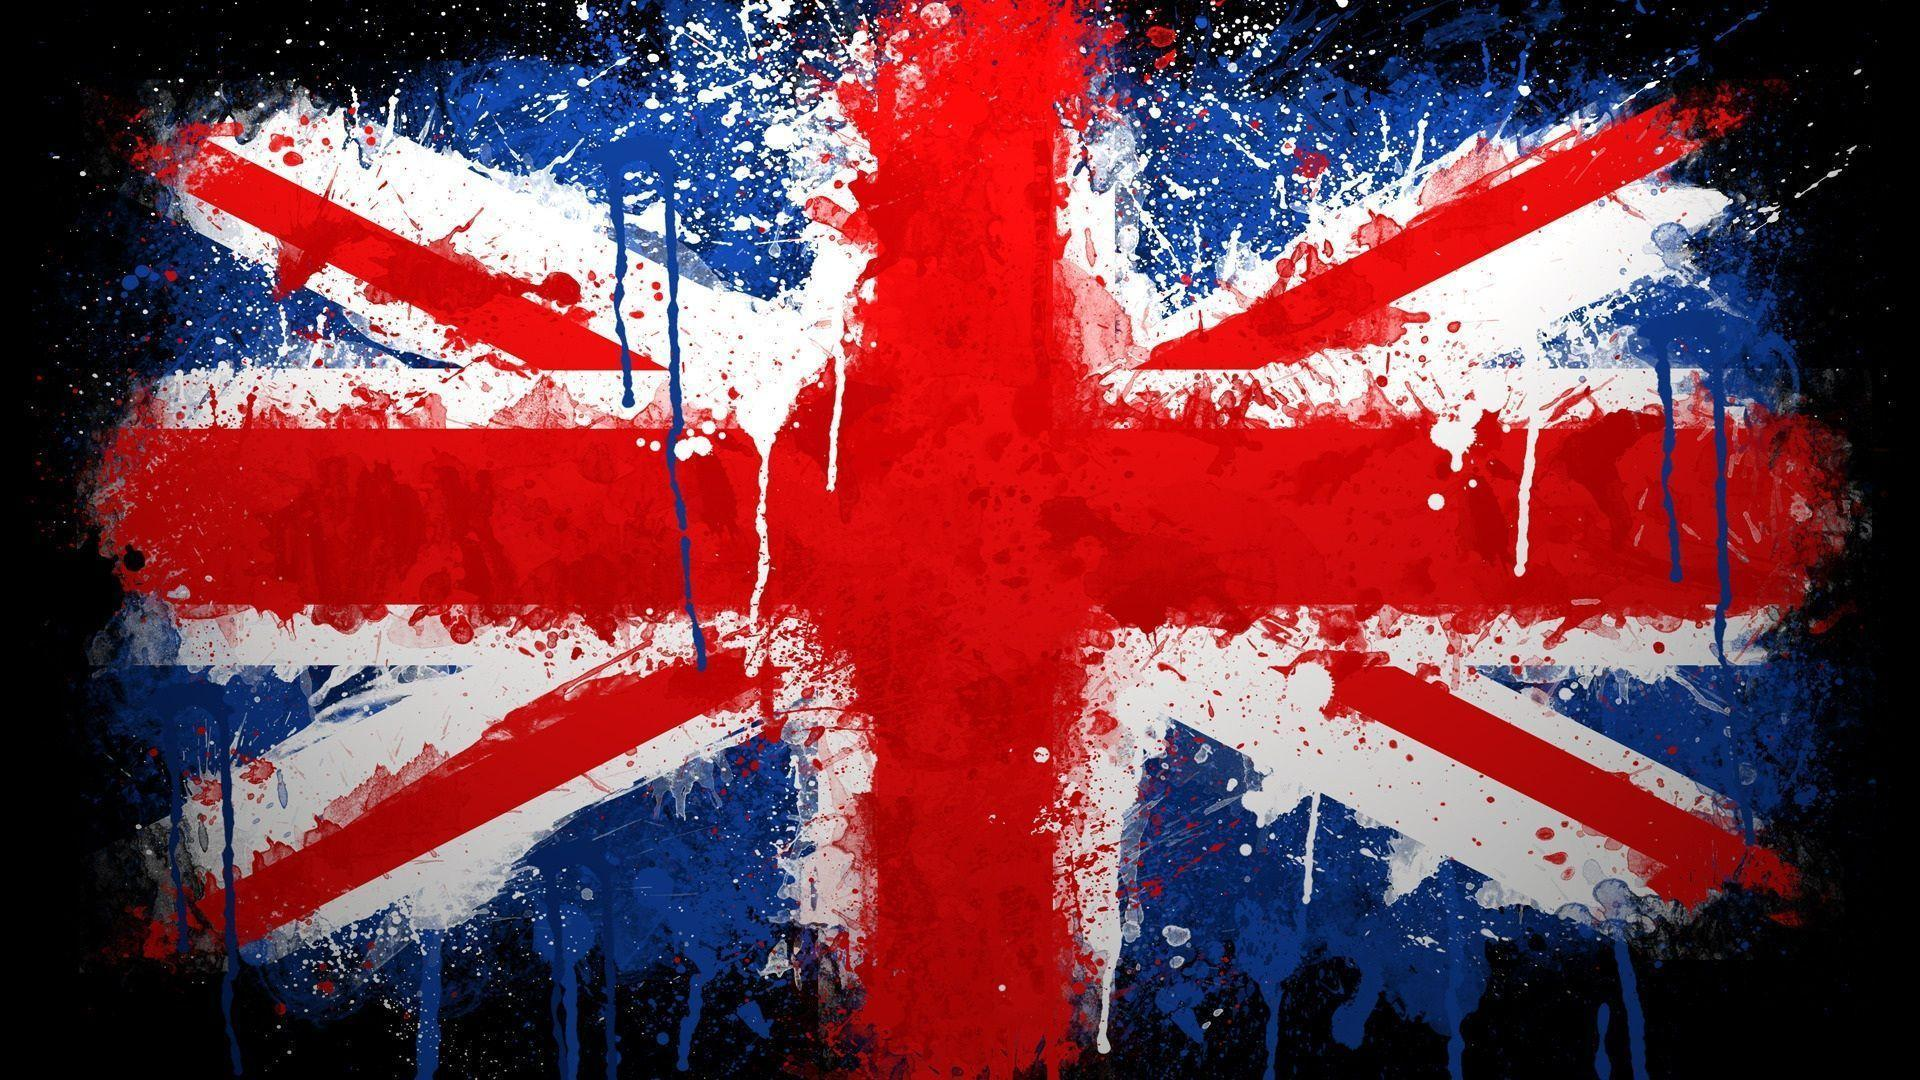 British Flag One Direction Images amp Pictures   Becuo 1920x1080